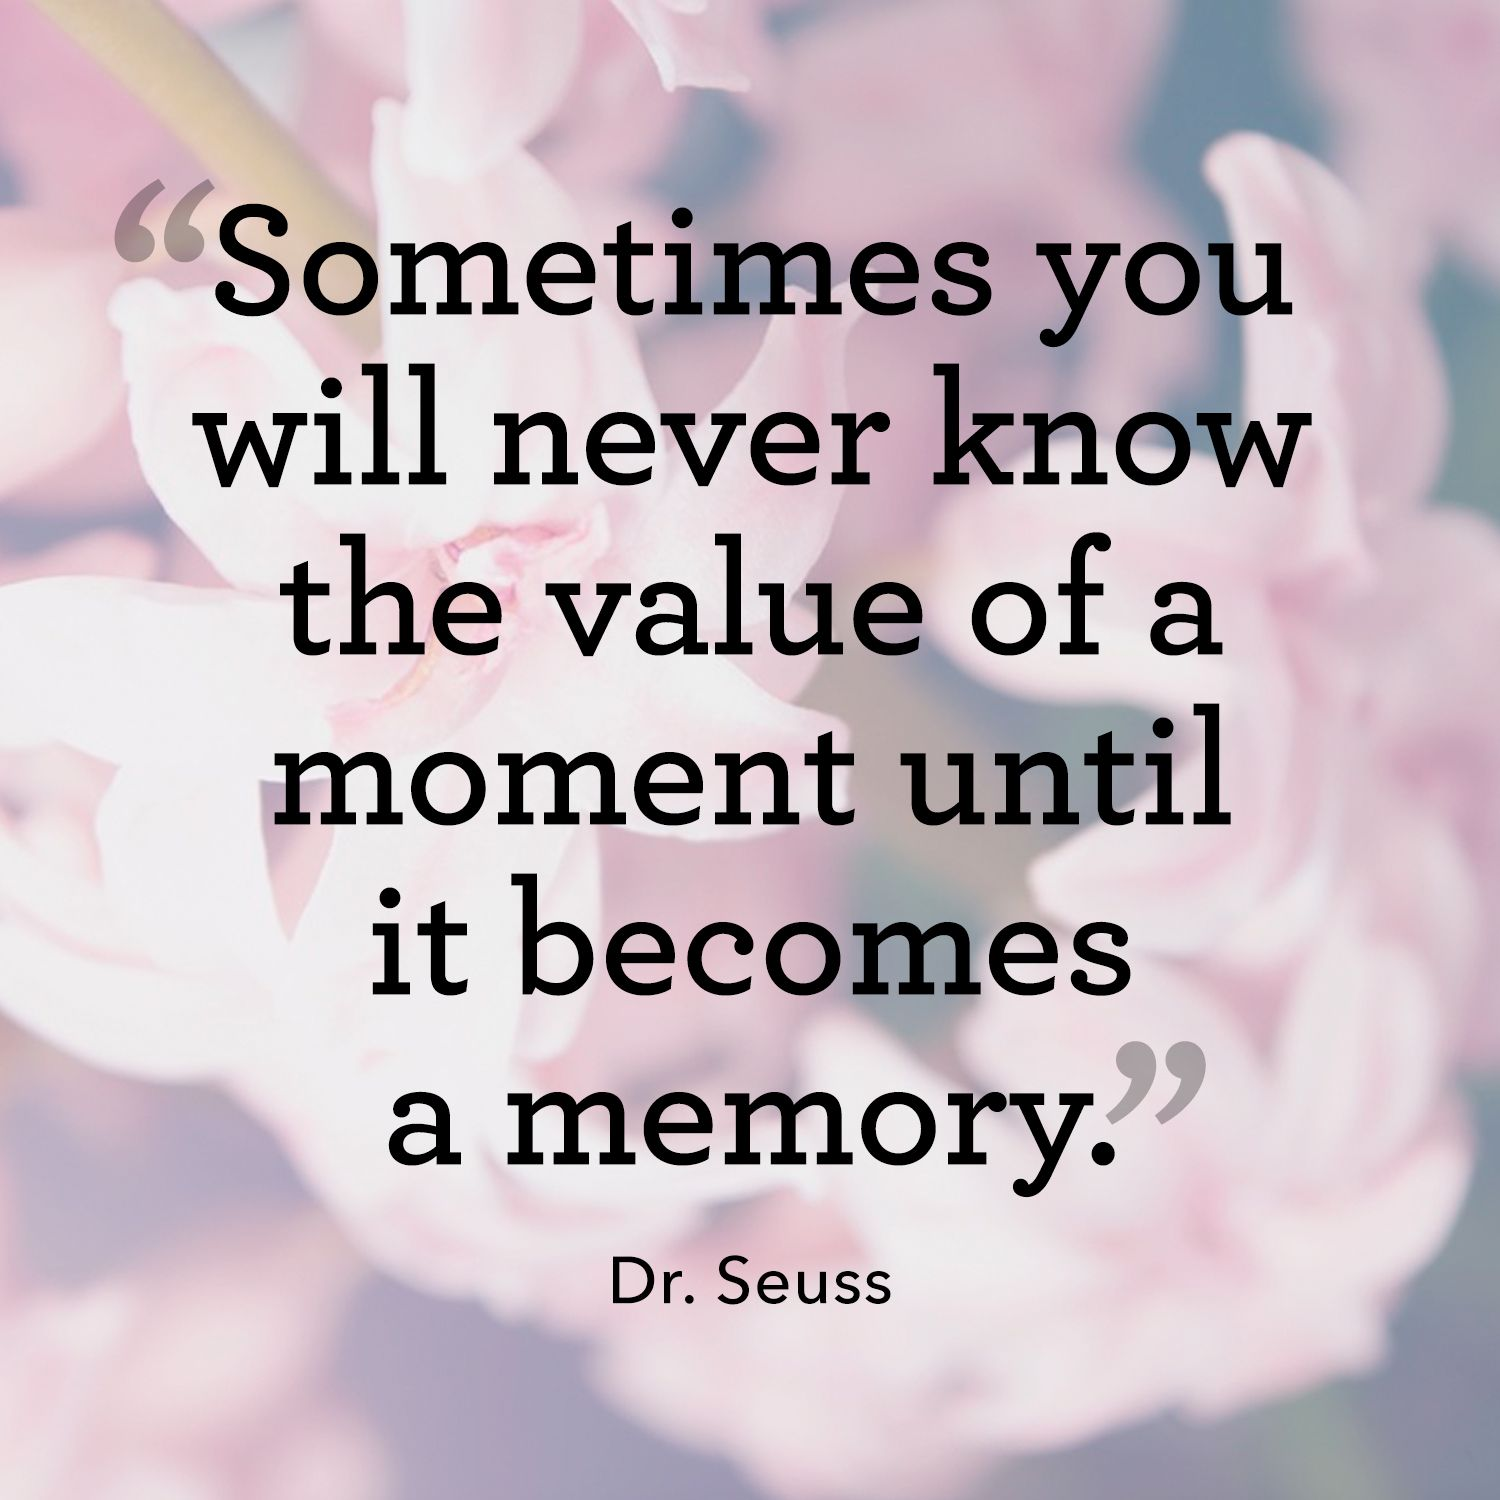 Dr Seuss Memory: Inspirational Quotes To Ring In The New Year